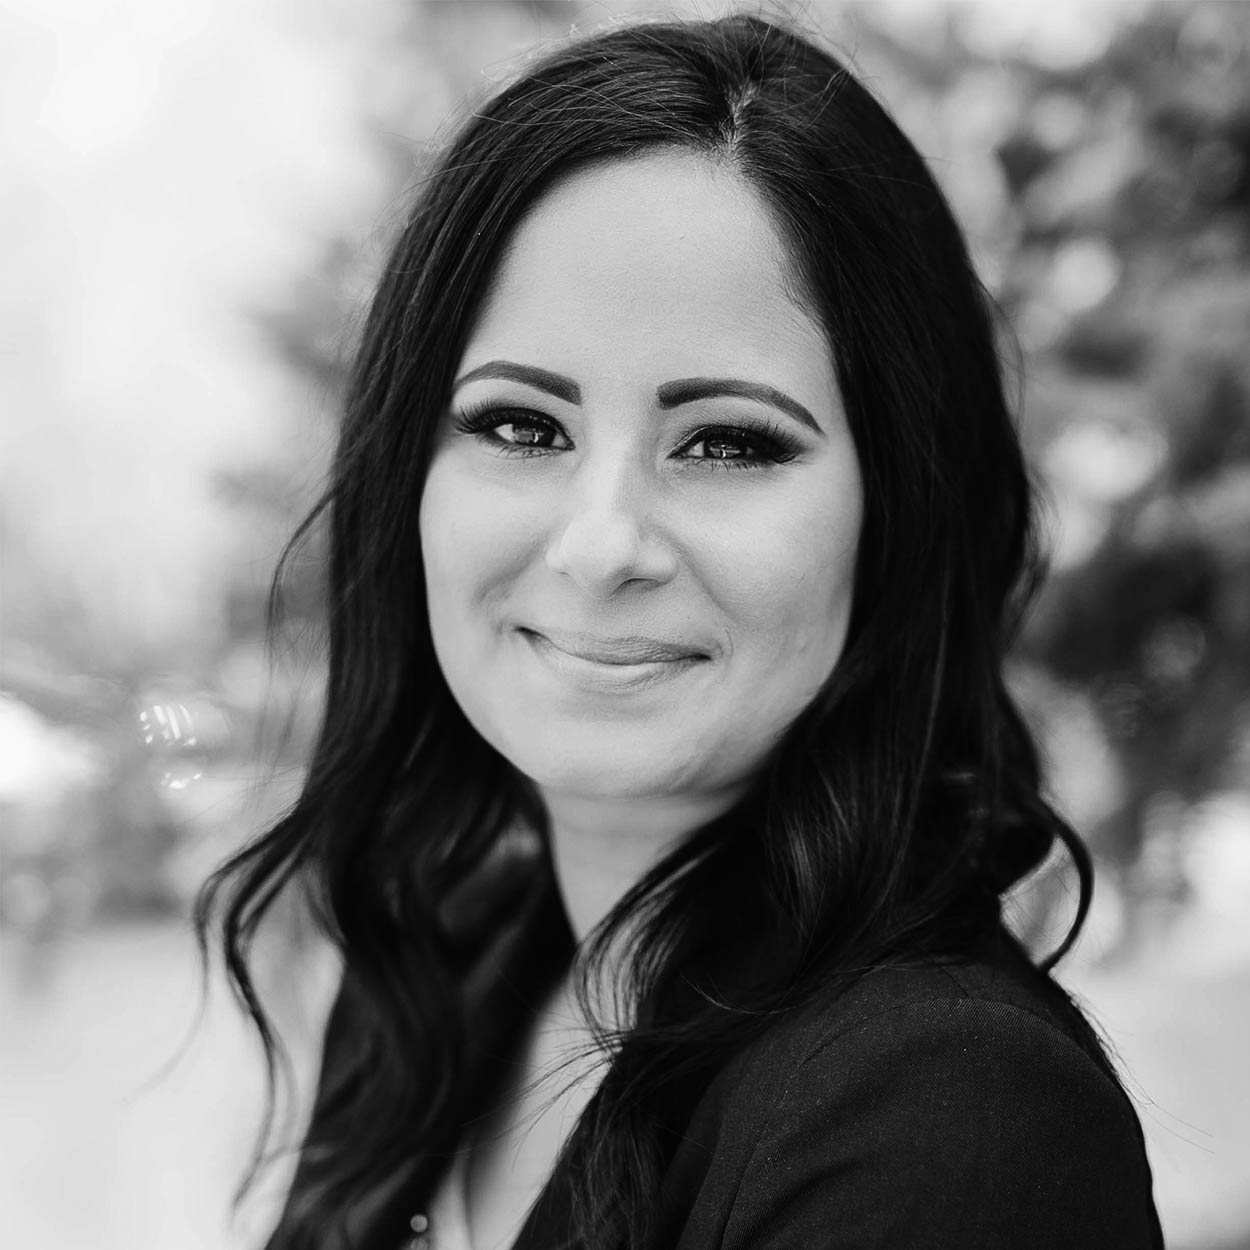 black and white image of rena, sexual abuse survivor